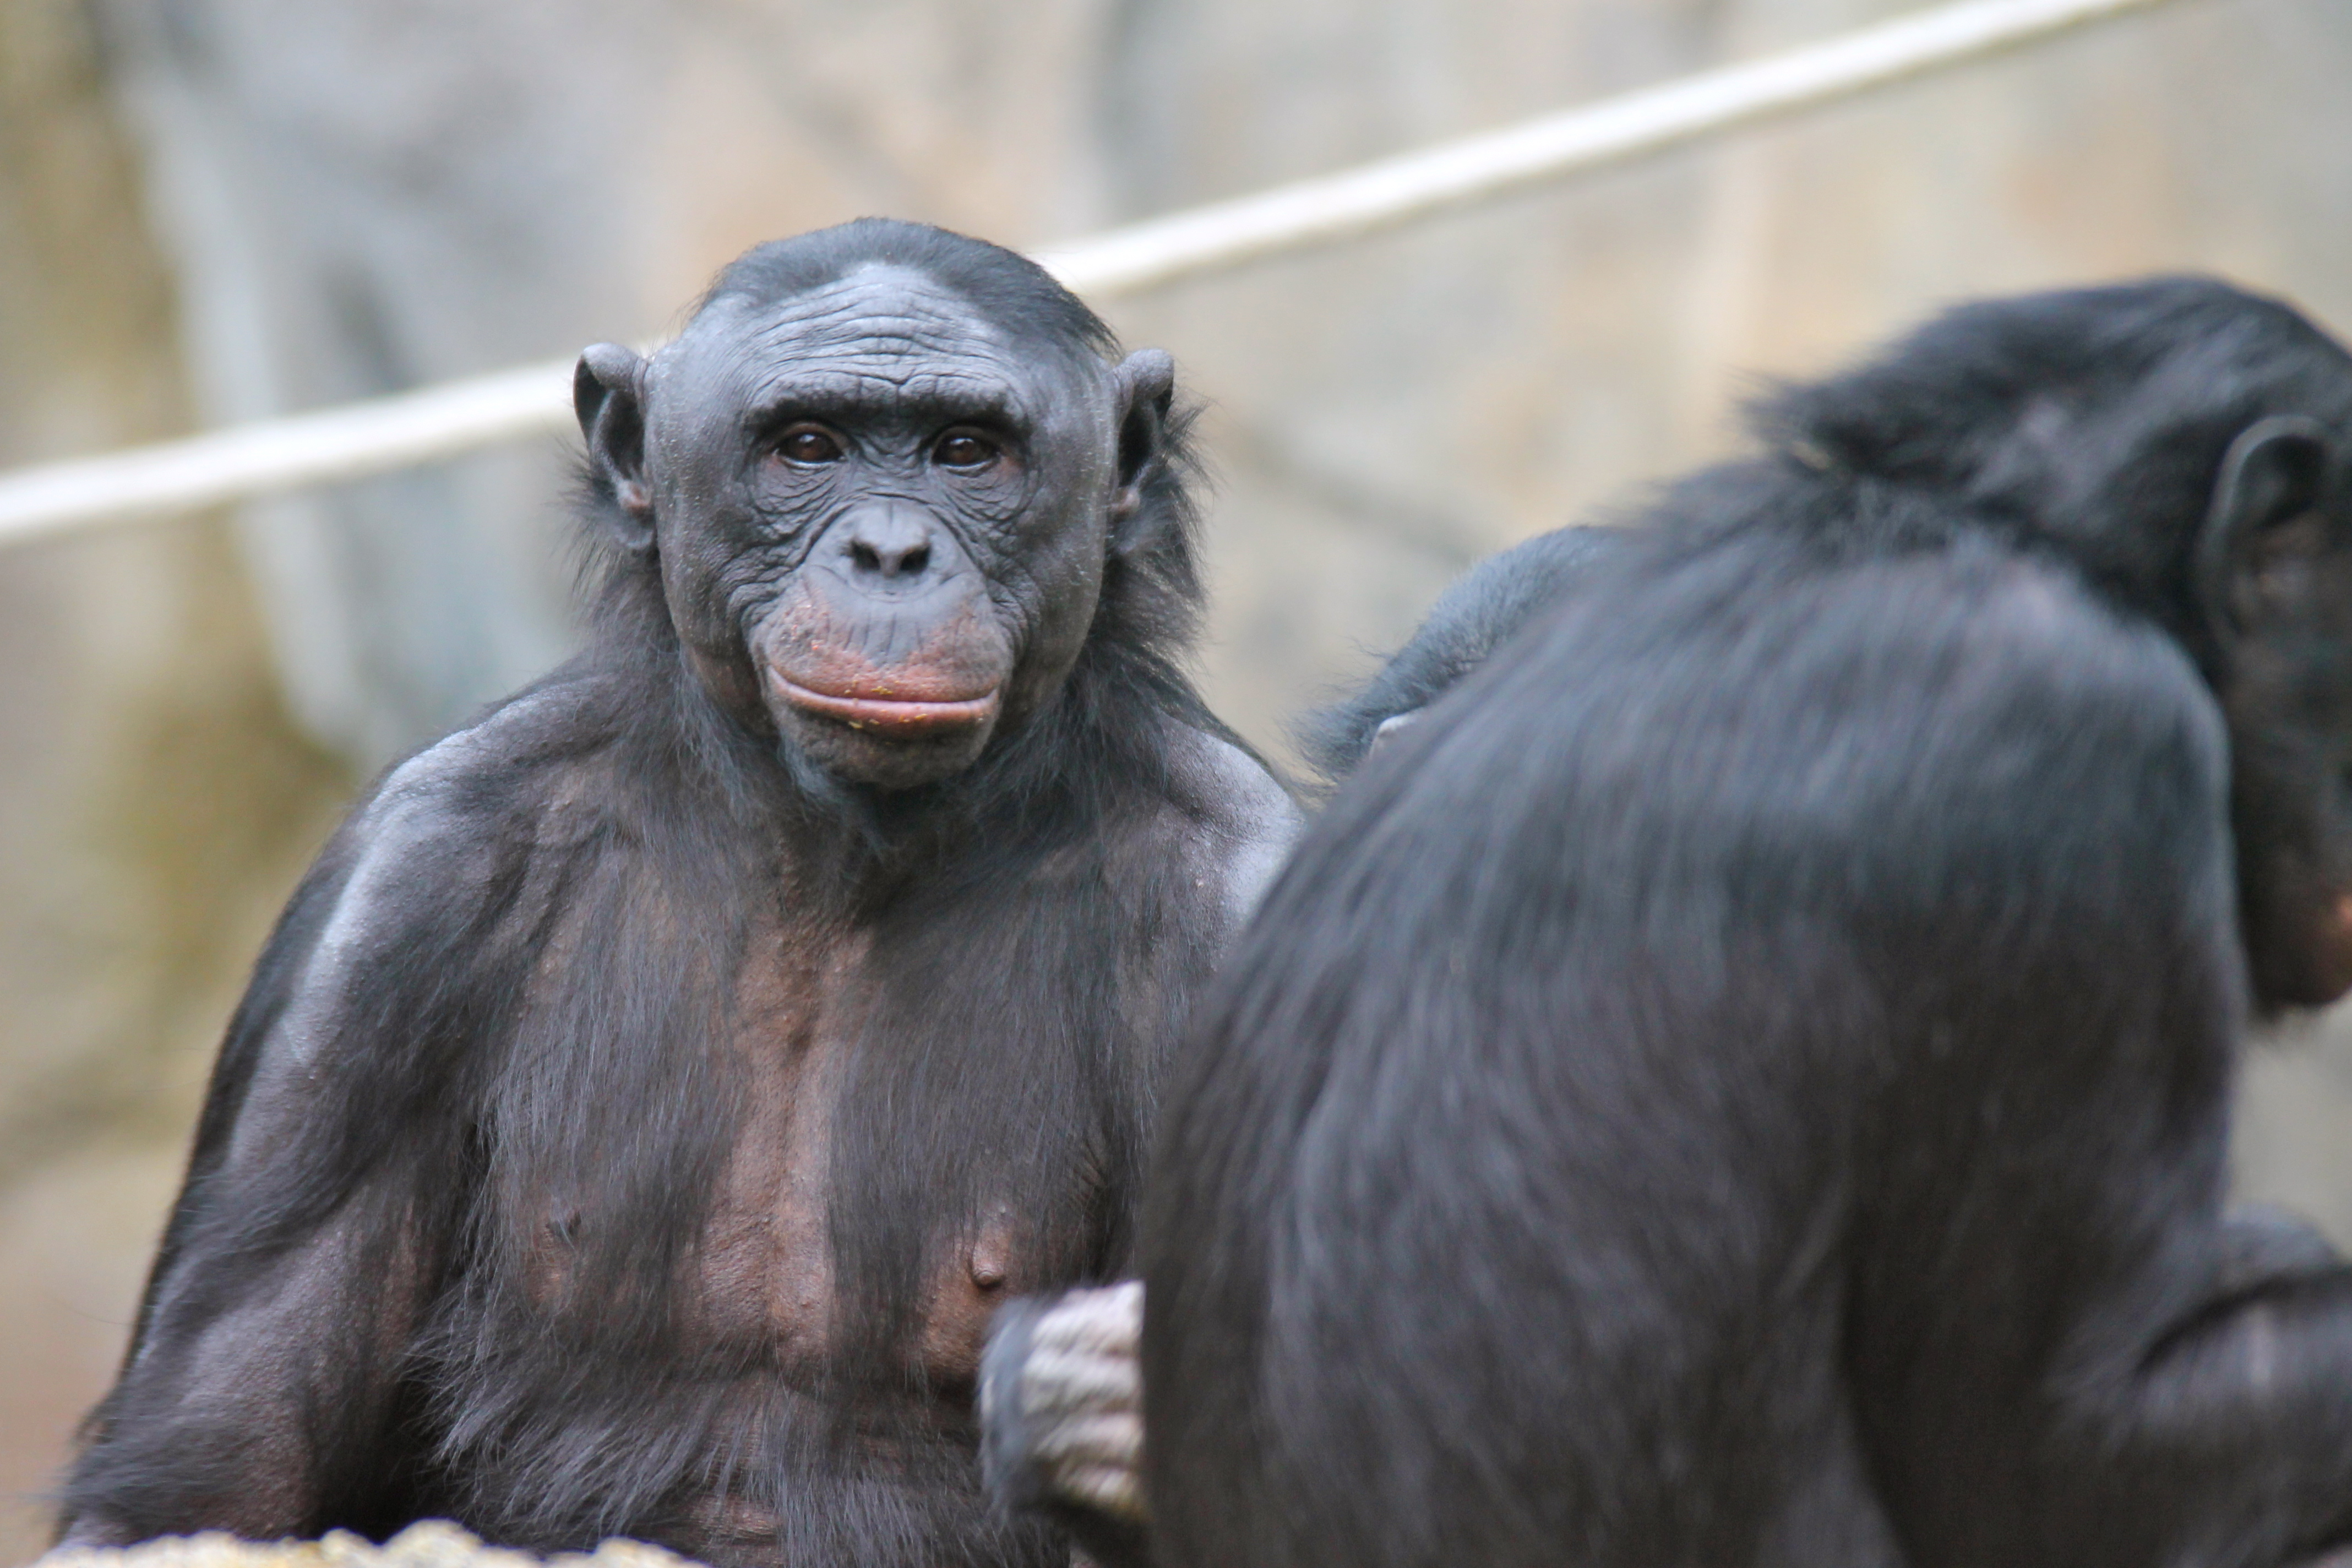 Chimpanzees Can Tell When You Believe Something False